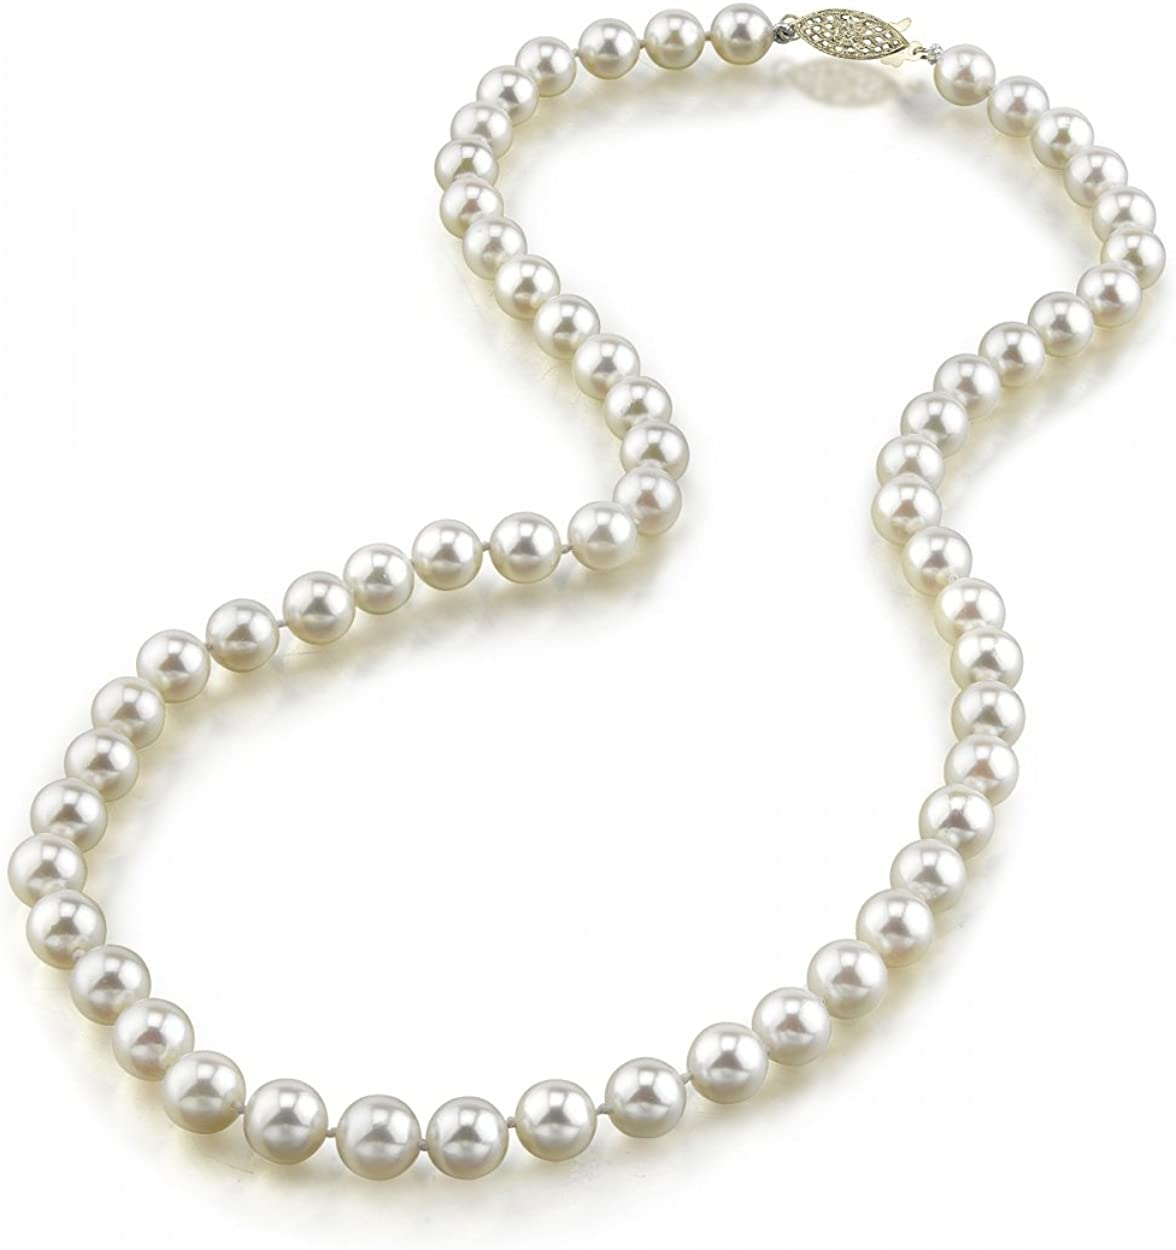 THE PEARL SOURCE 14K Gold 6.5-7.0mm Round Genuine White Japanese Akoya Saltwater Cultured Pearl Necklace in 20 Matinee Length for Women